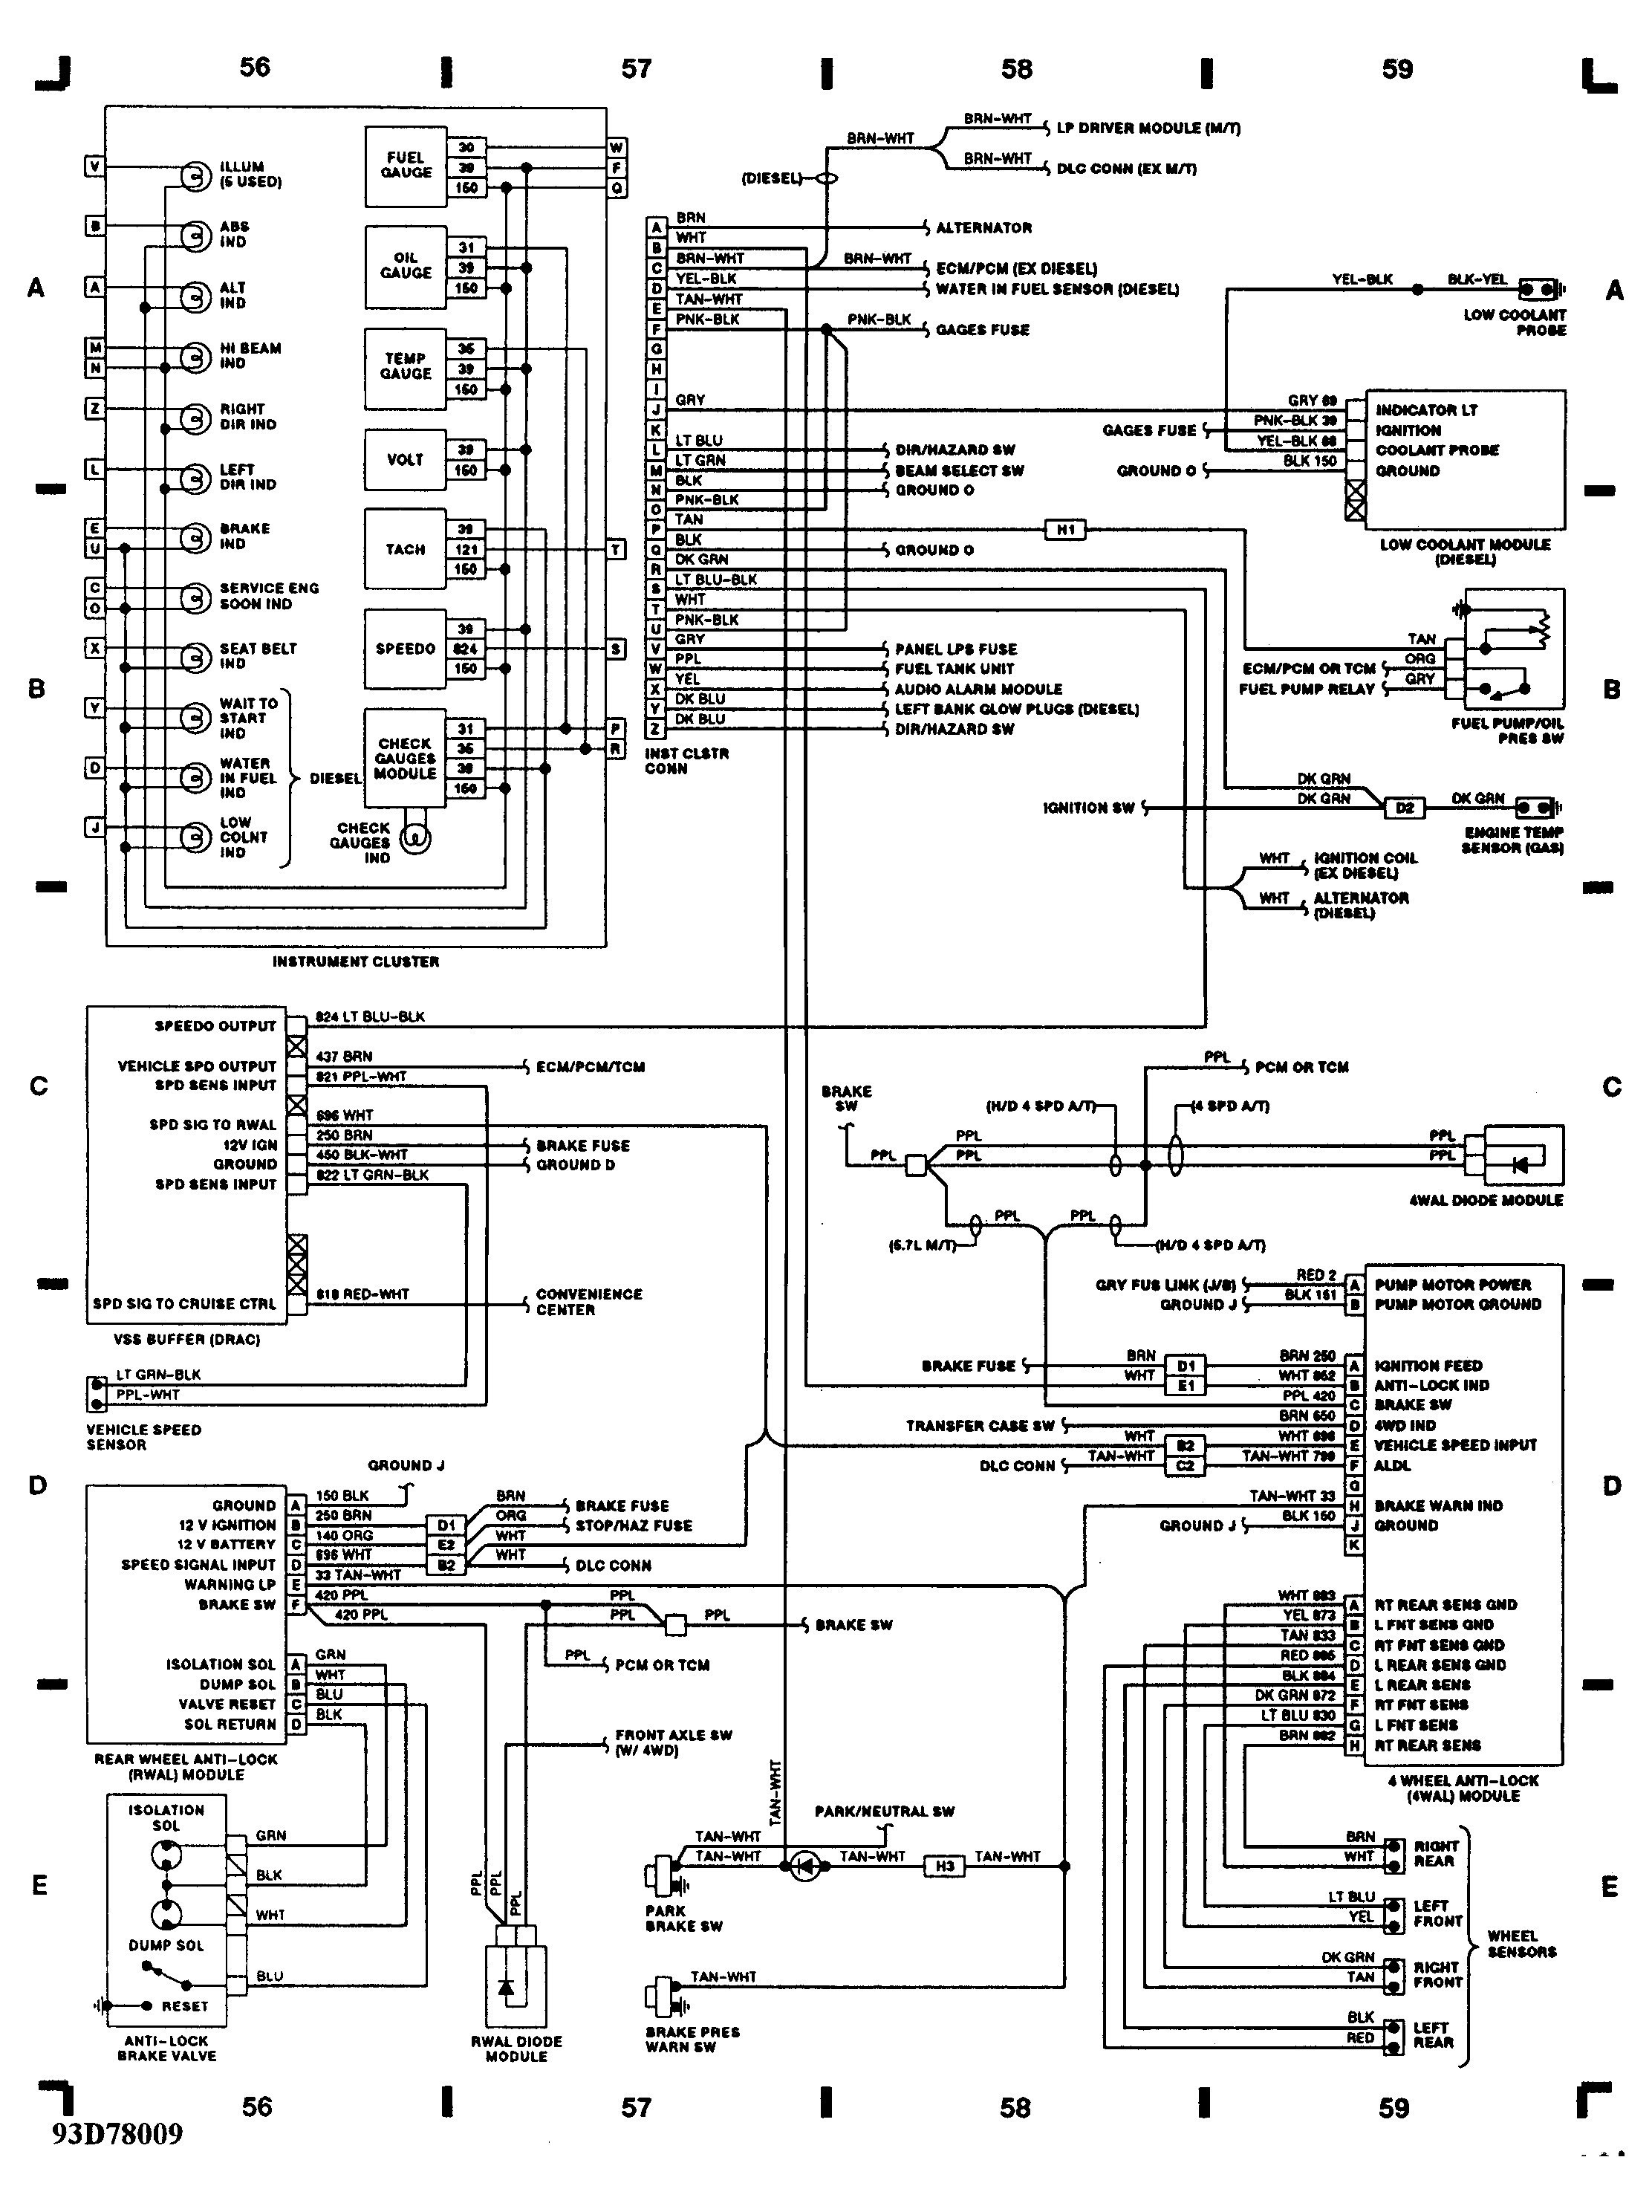 98 Chevy Lumina Wiring Diagram - Wiring Diagram Networks | 99 Lumina Turn Signal Wiring Diagram |  | Wiring Diagram Networks - blogger